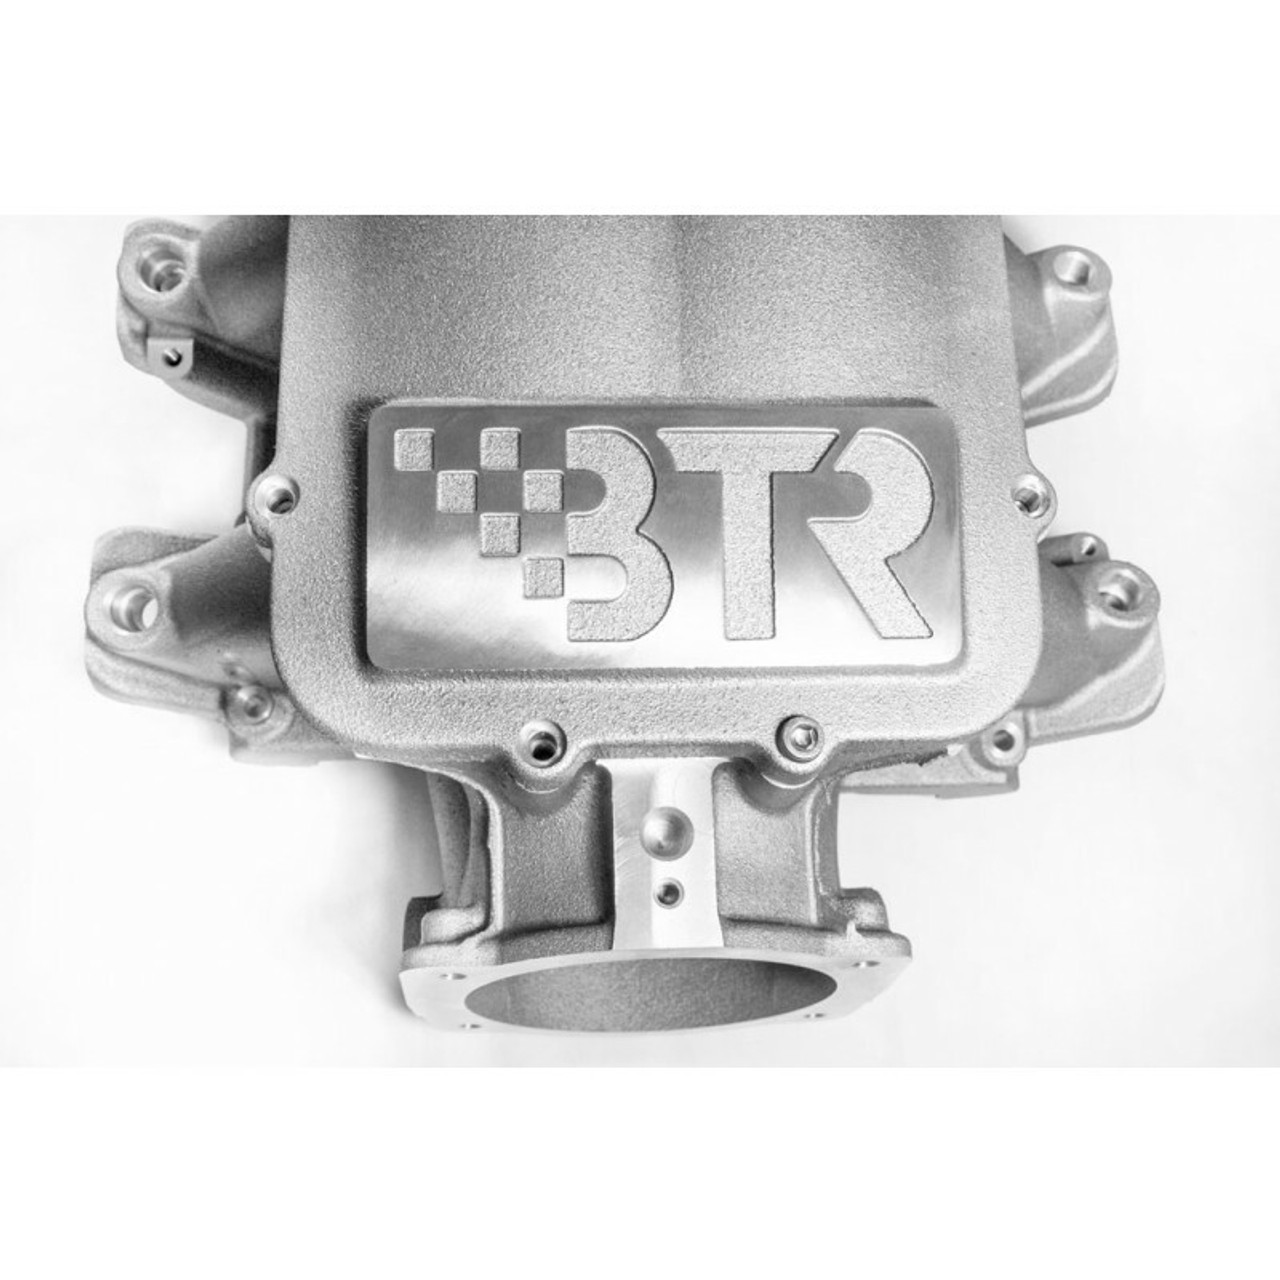 BTR Equalizer 3 Intake Manifold - Square Port Head Brian Tooley IMA-03 LS3 LSA L92 6.2